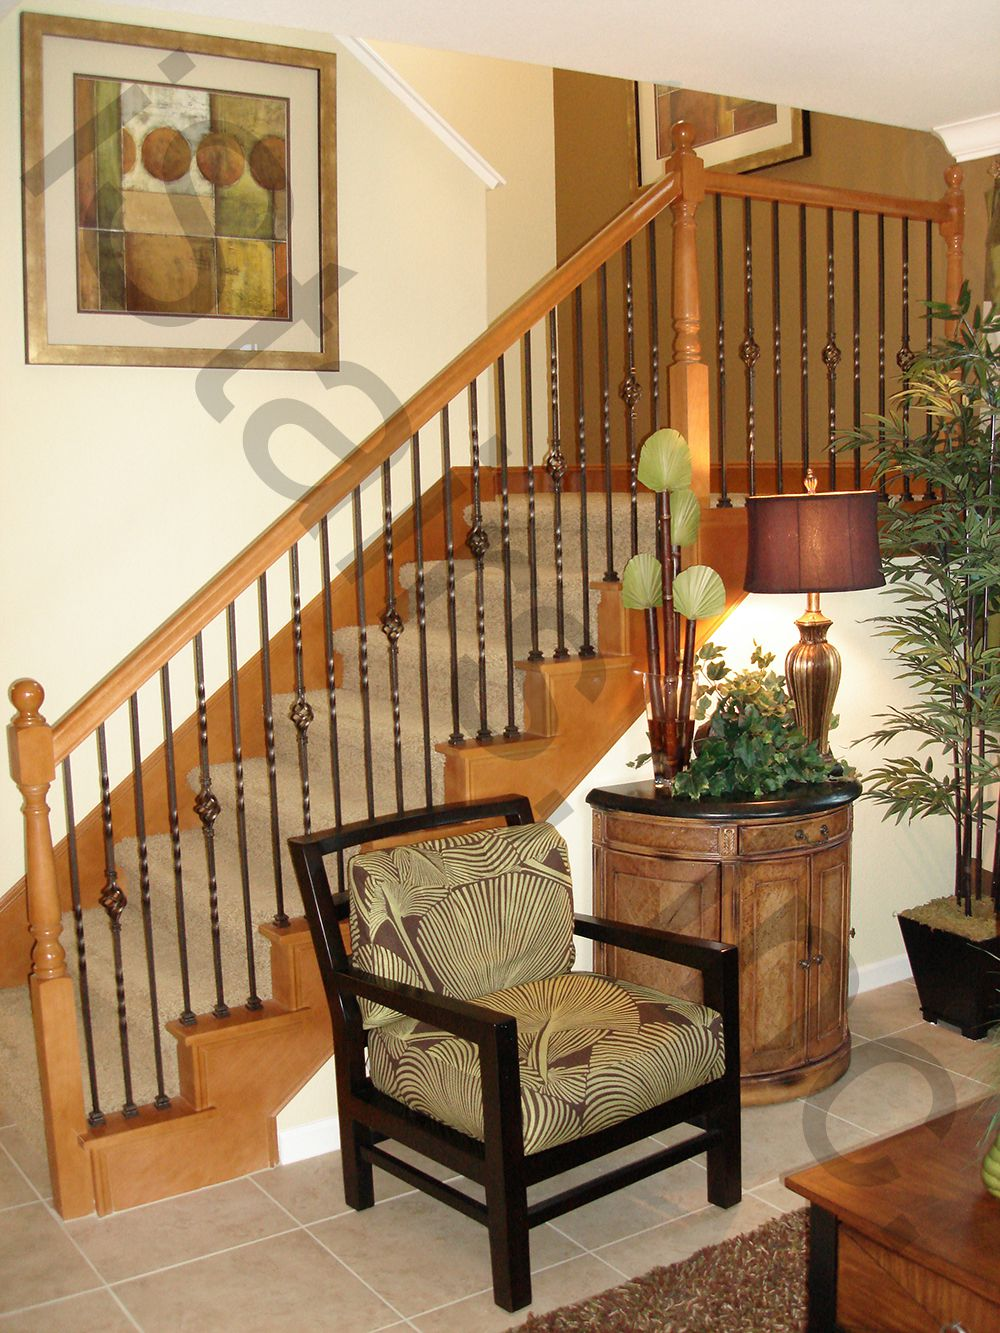 Beech w/iron balusters turned newels post-to-post